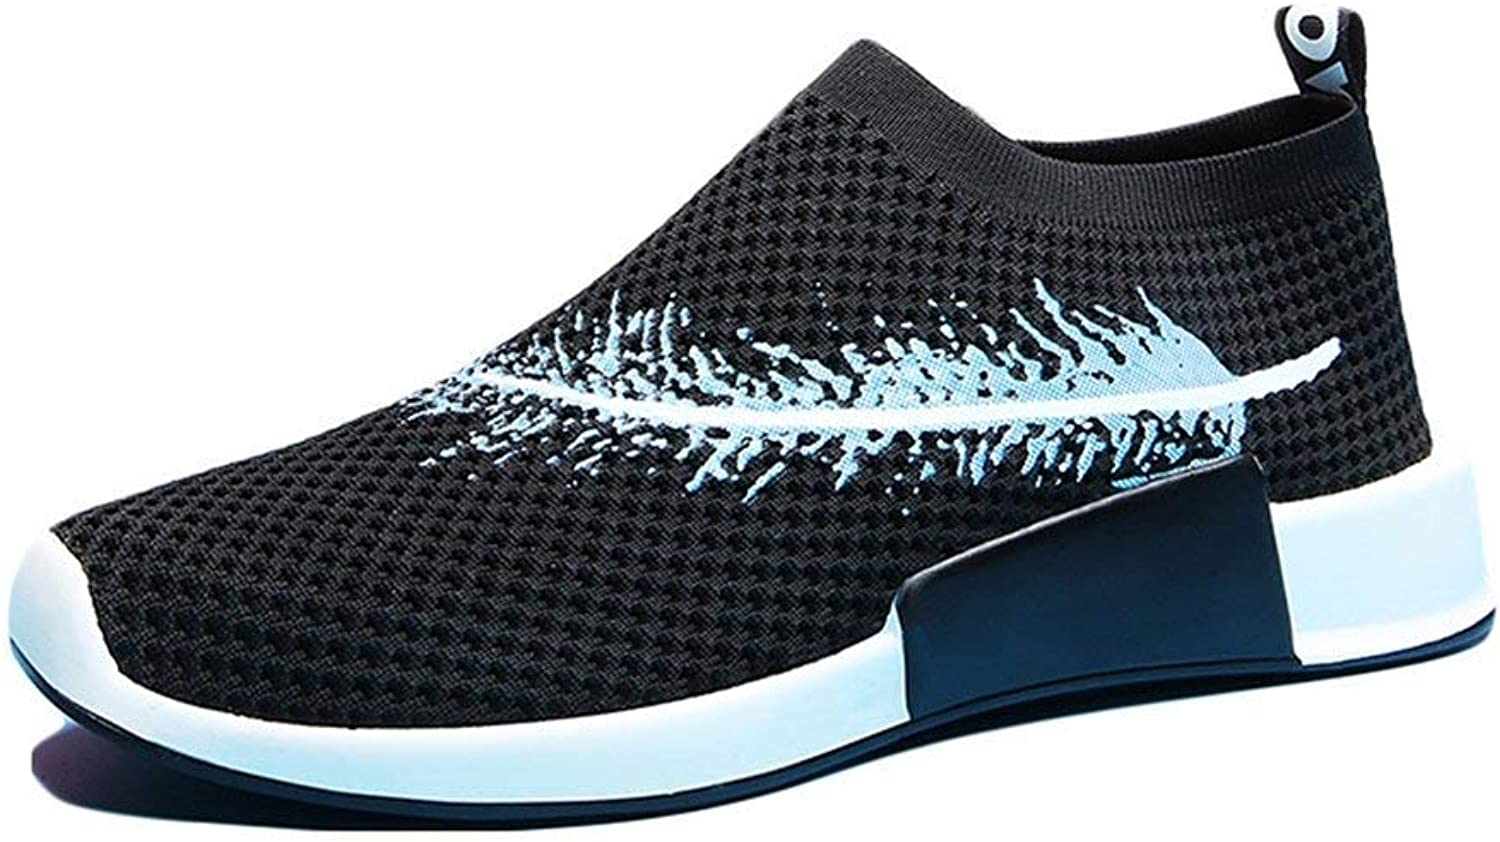 ZHRUI Adults Outdoors Trainers Summer Running shoes for Men Woman Sock Footwear Sport Athletic Unisex Breathable Mesh Female Sneakers (color   W01 Black, Size   8 UK)